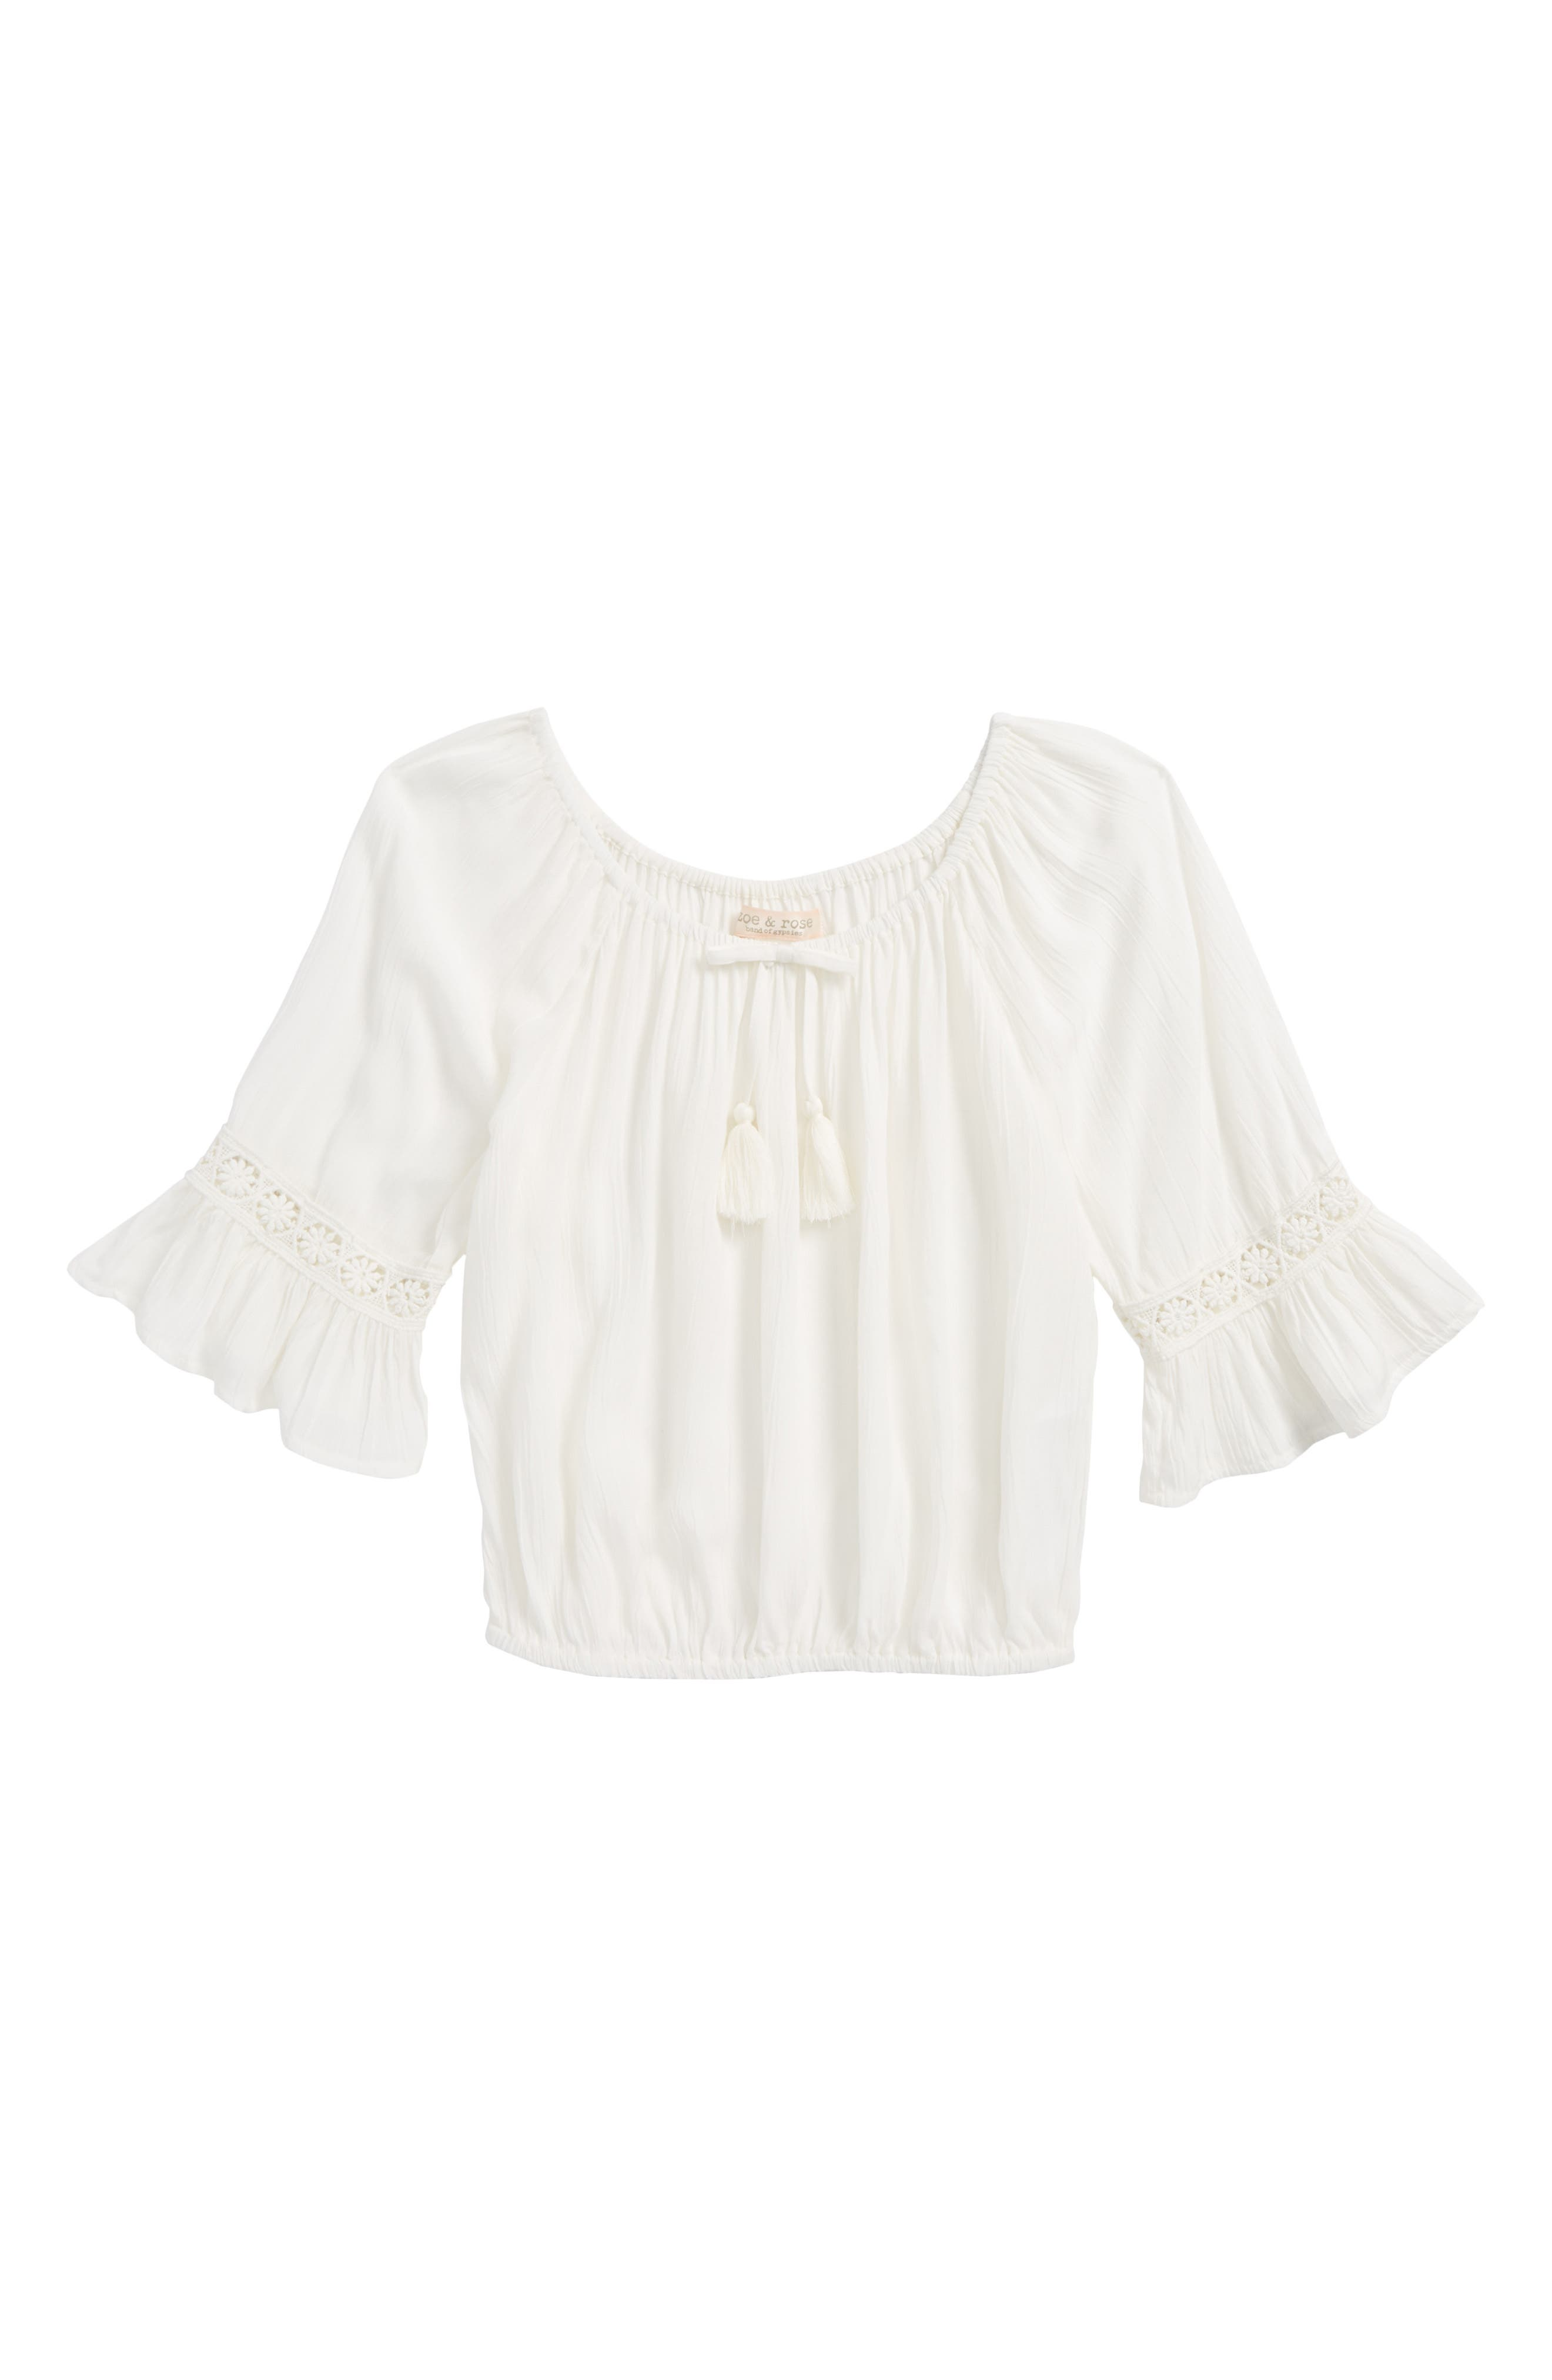 Crochet Trim Blouse,                             Main thumbnail 1, color,                             900